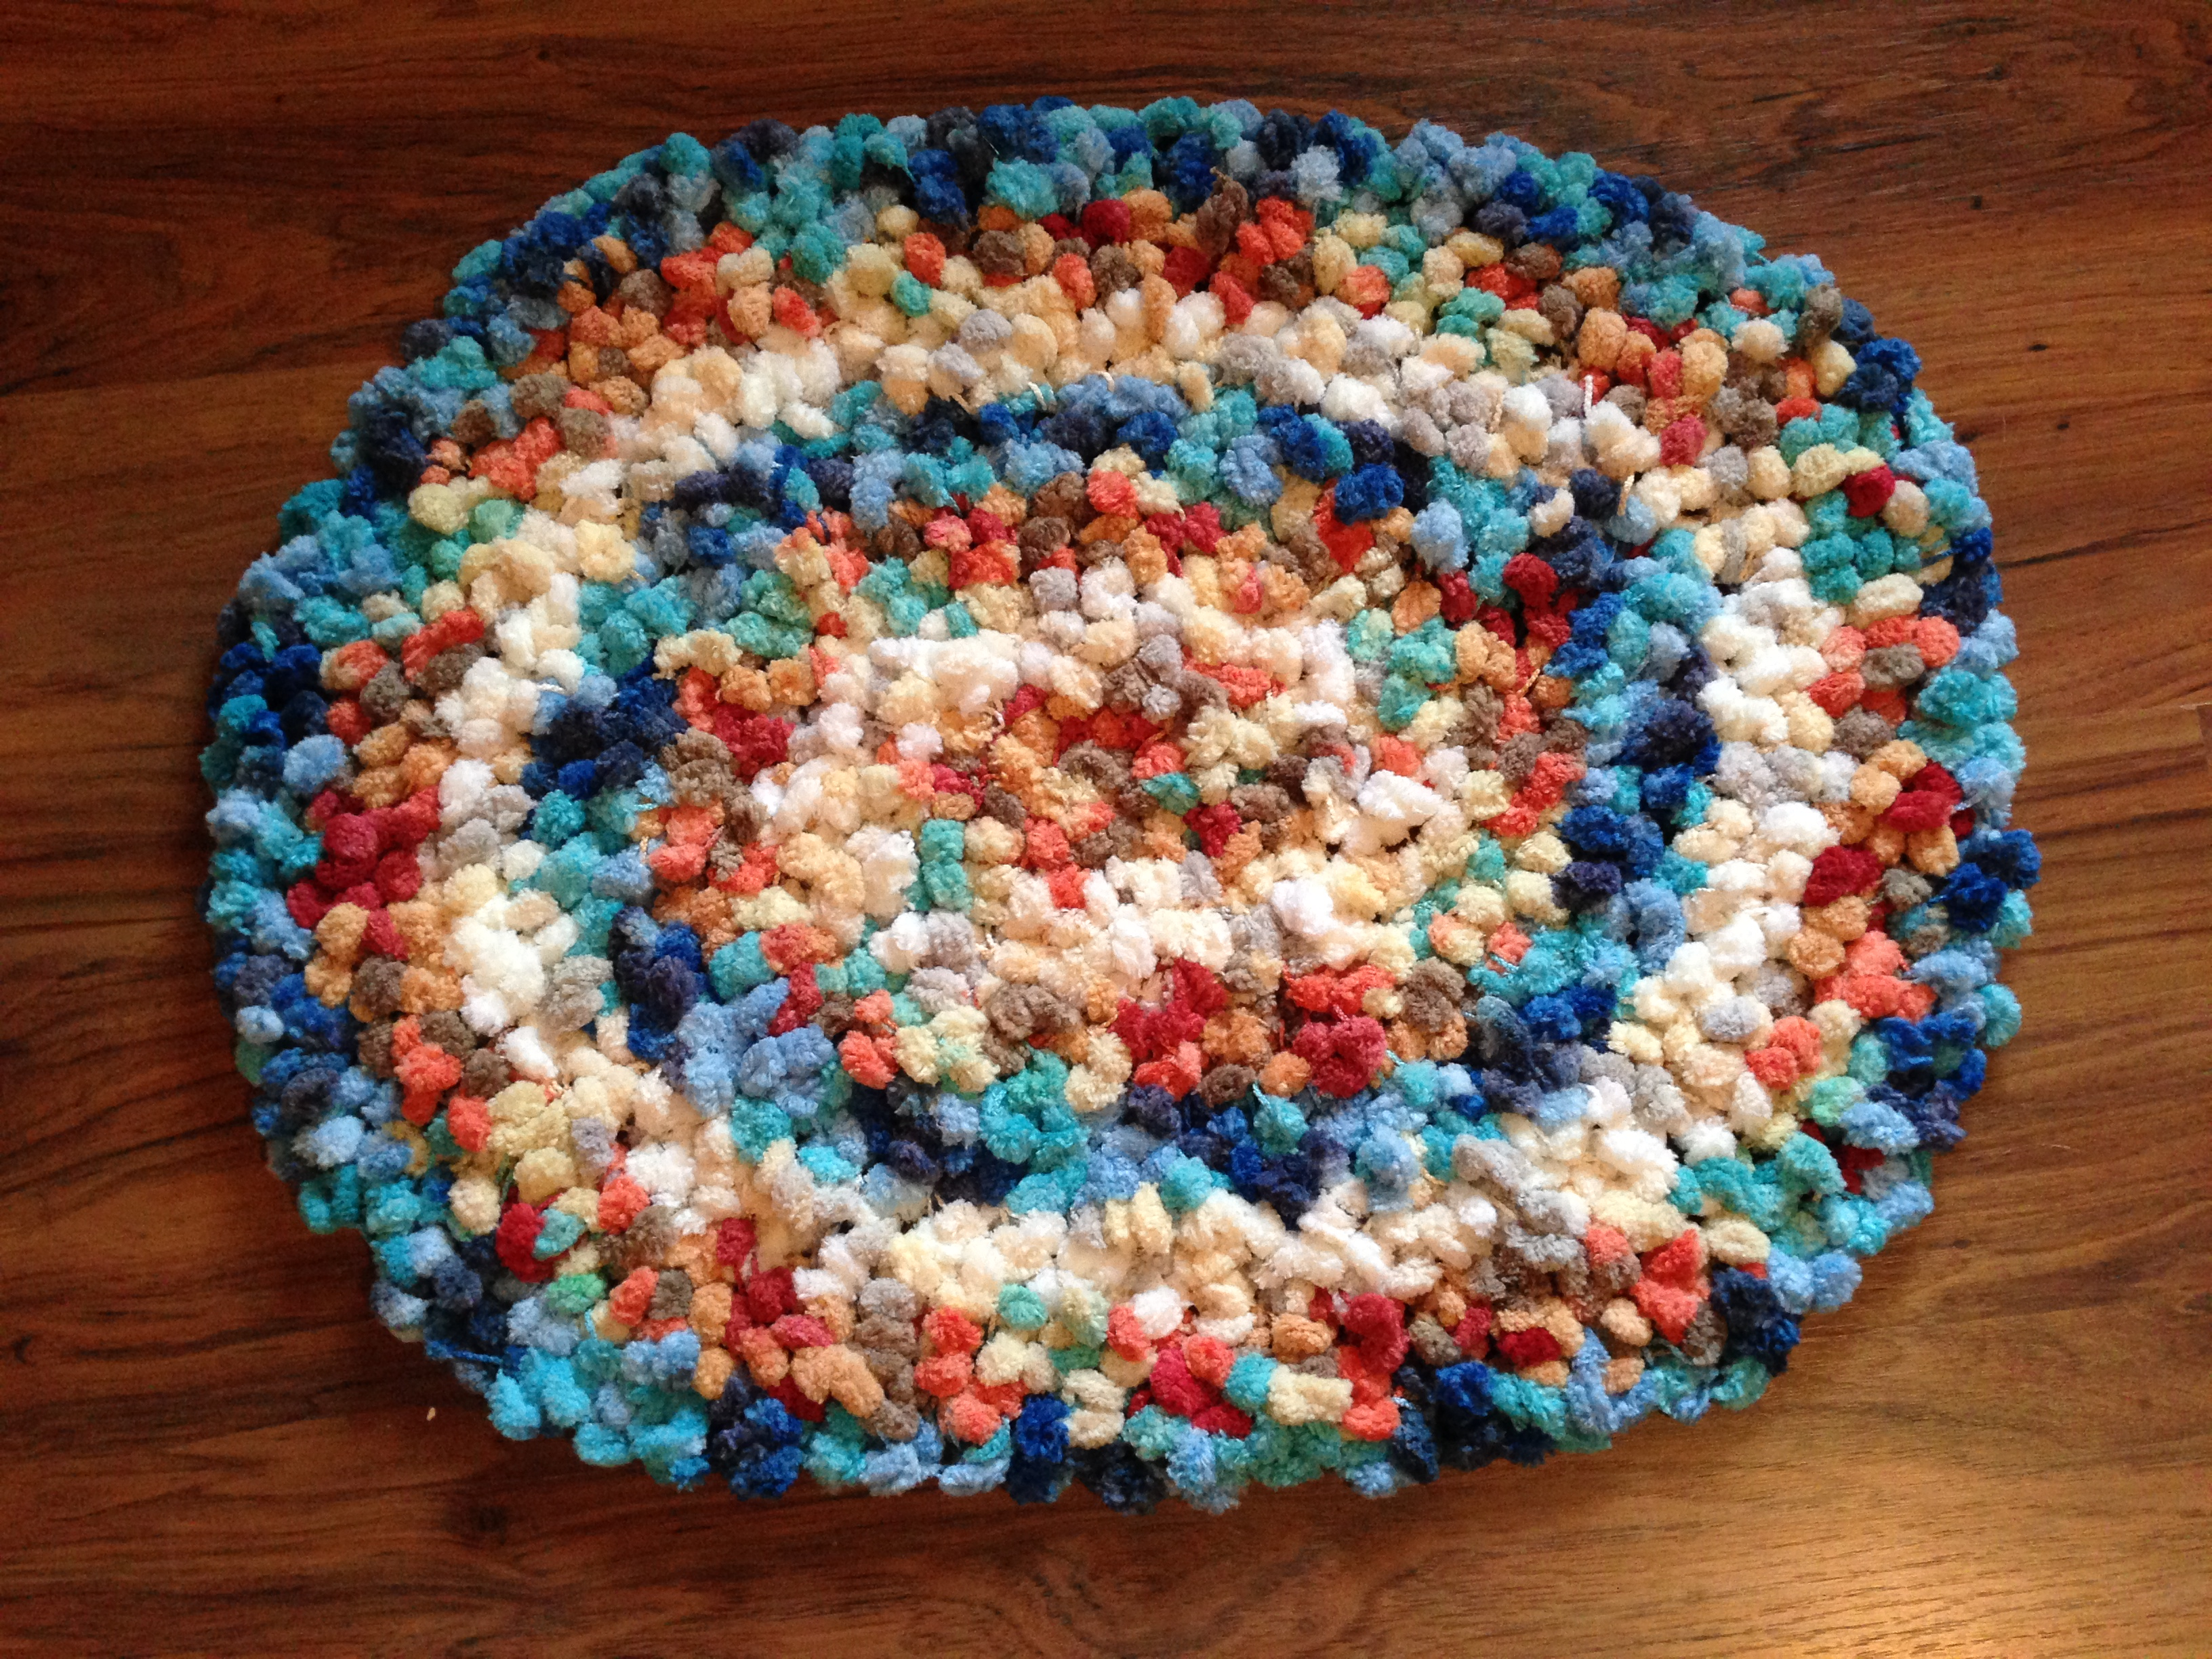 Crochet Patterns Loops And Thread Yarn : Simple & Fun Rug Made With Yarn Scraps Simply Angie